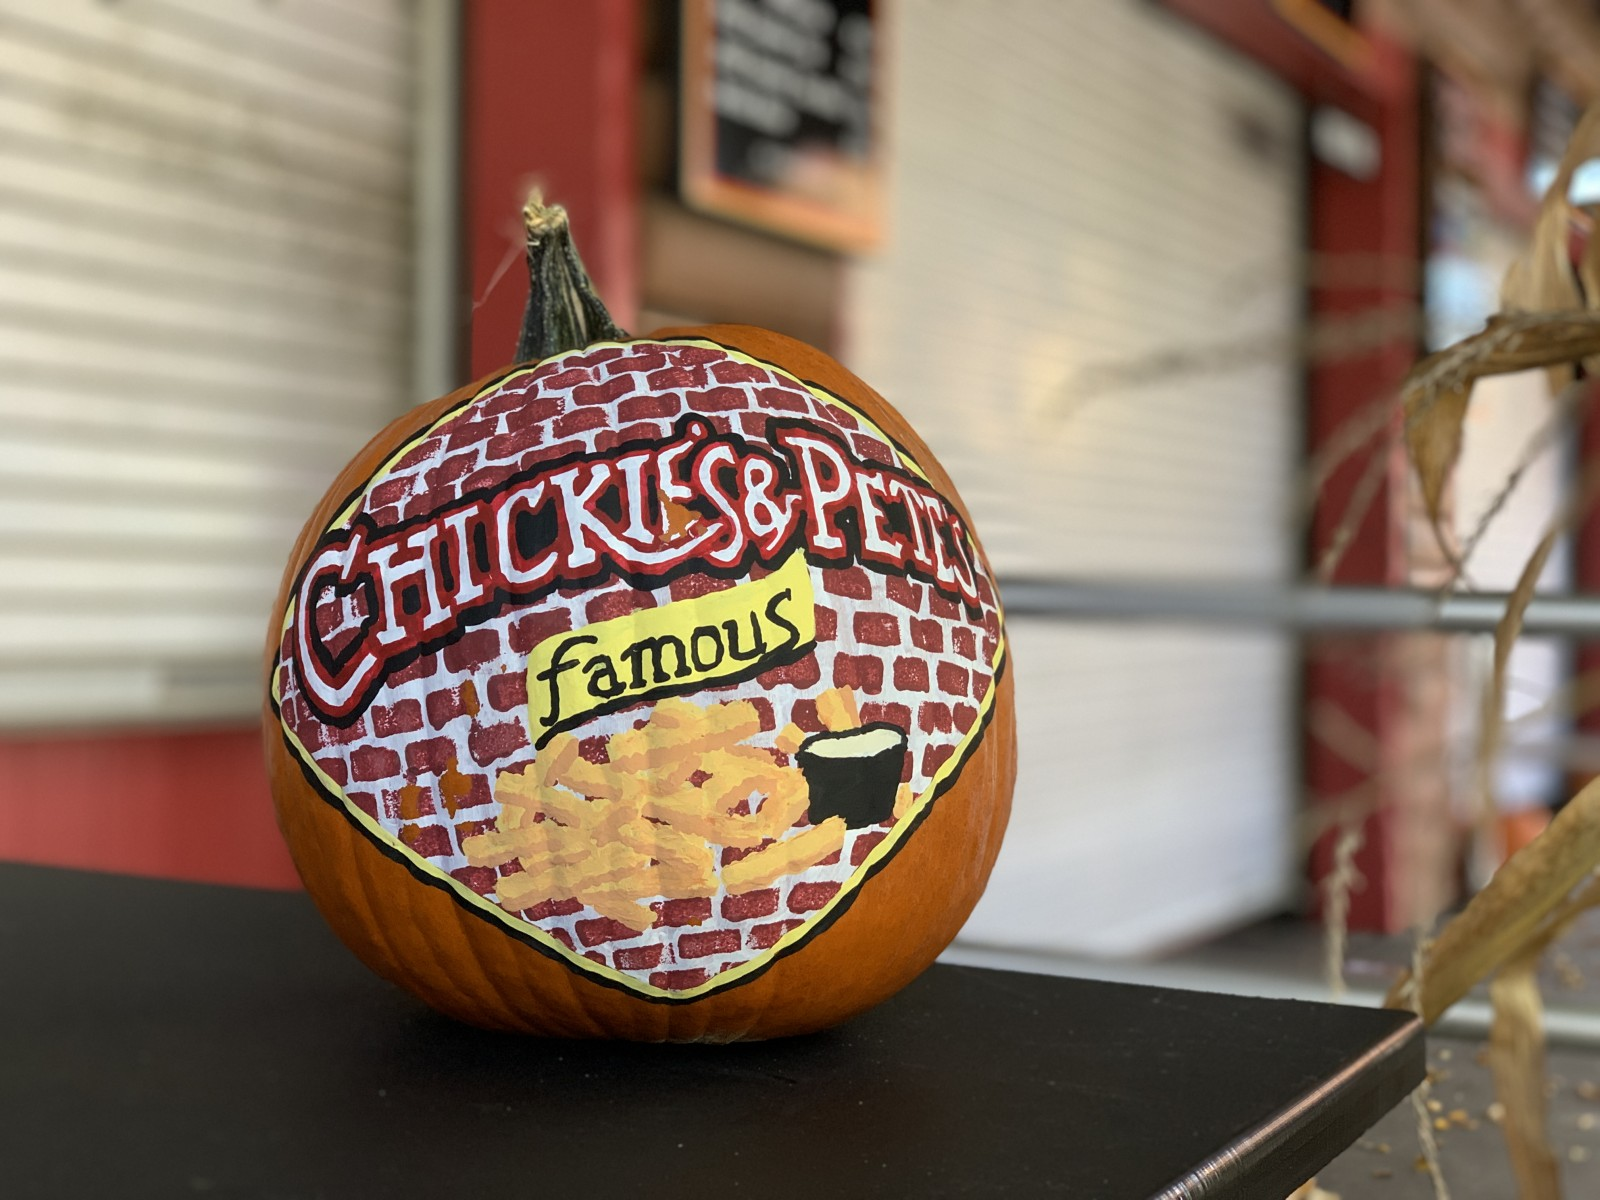 Hersheypark Pumpkin Chickies and Petes